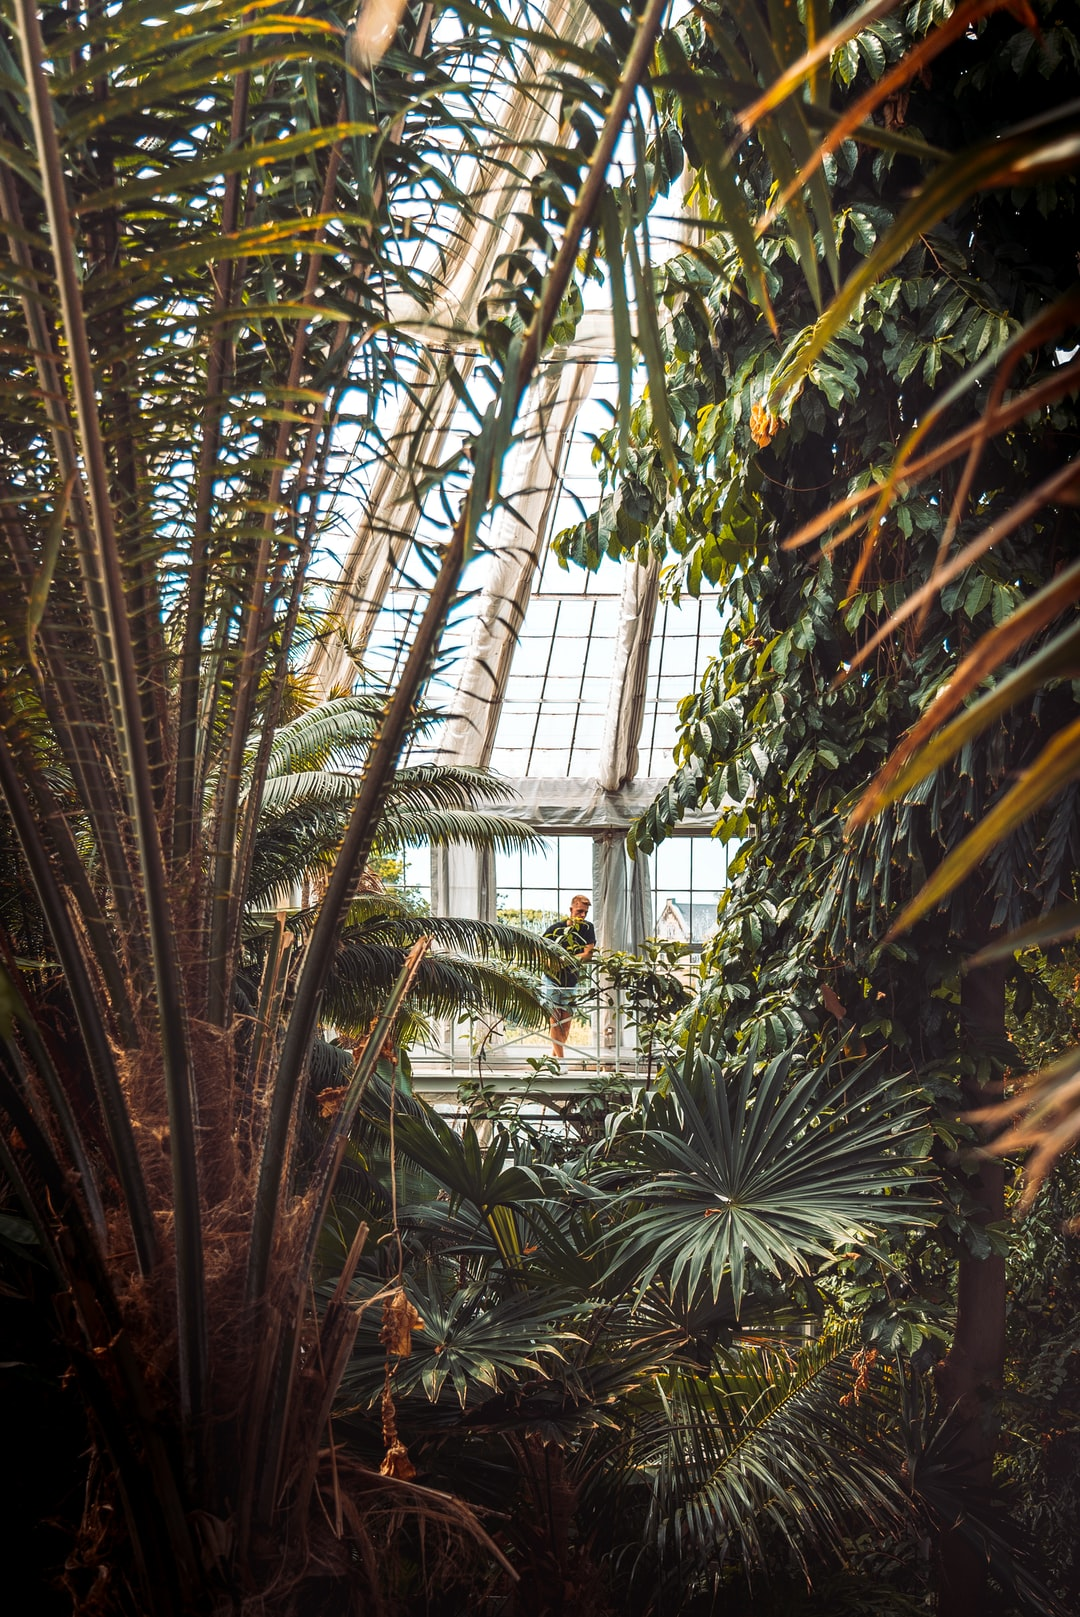 Despite battling with the hot, humid air at the very top of the greenhouse, this old balcony gives you a fantastic overlook of the various plants and palms in the exotic Palm House of the Copenhagen Botanical Garden.